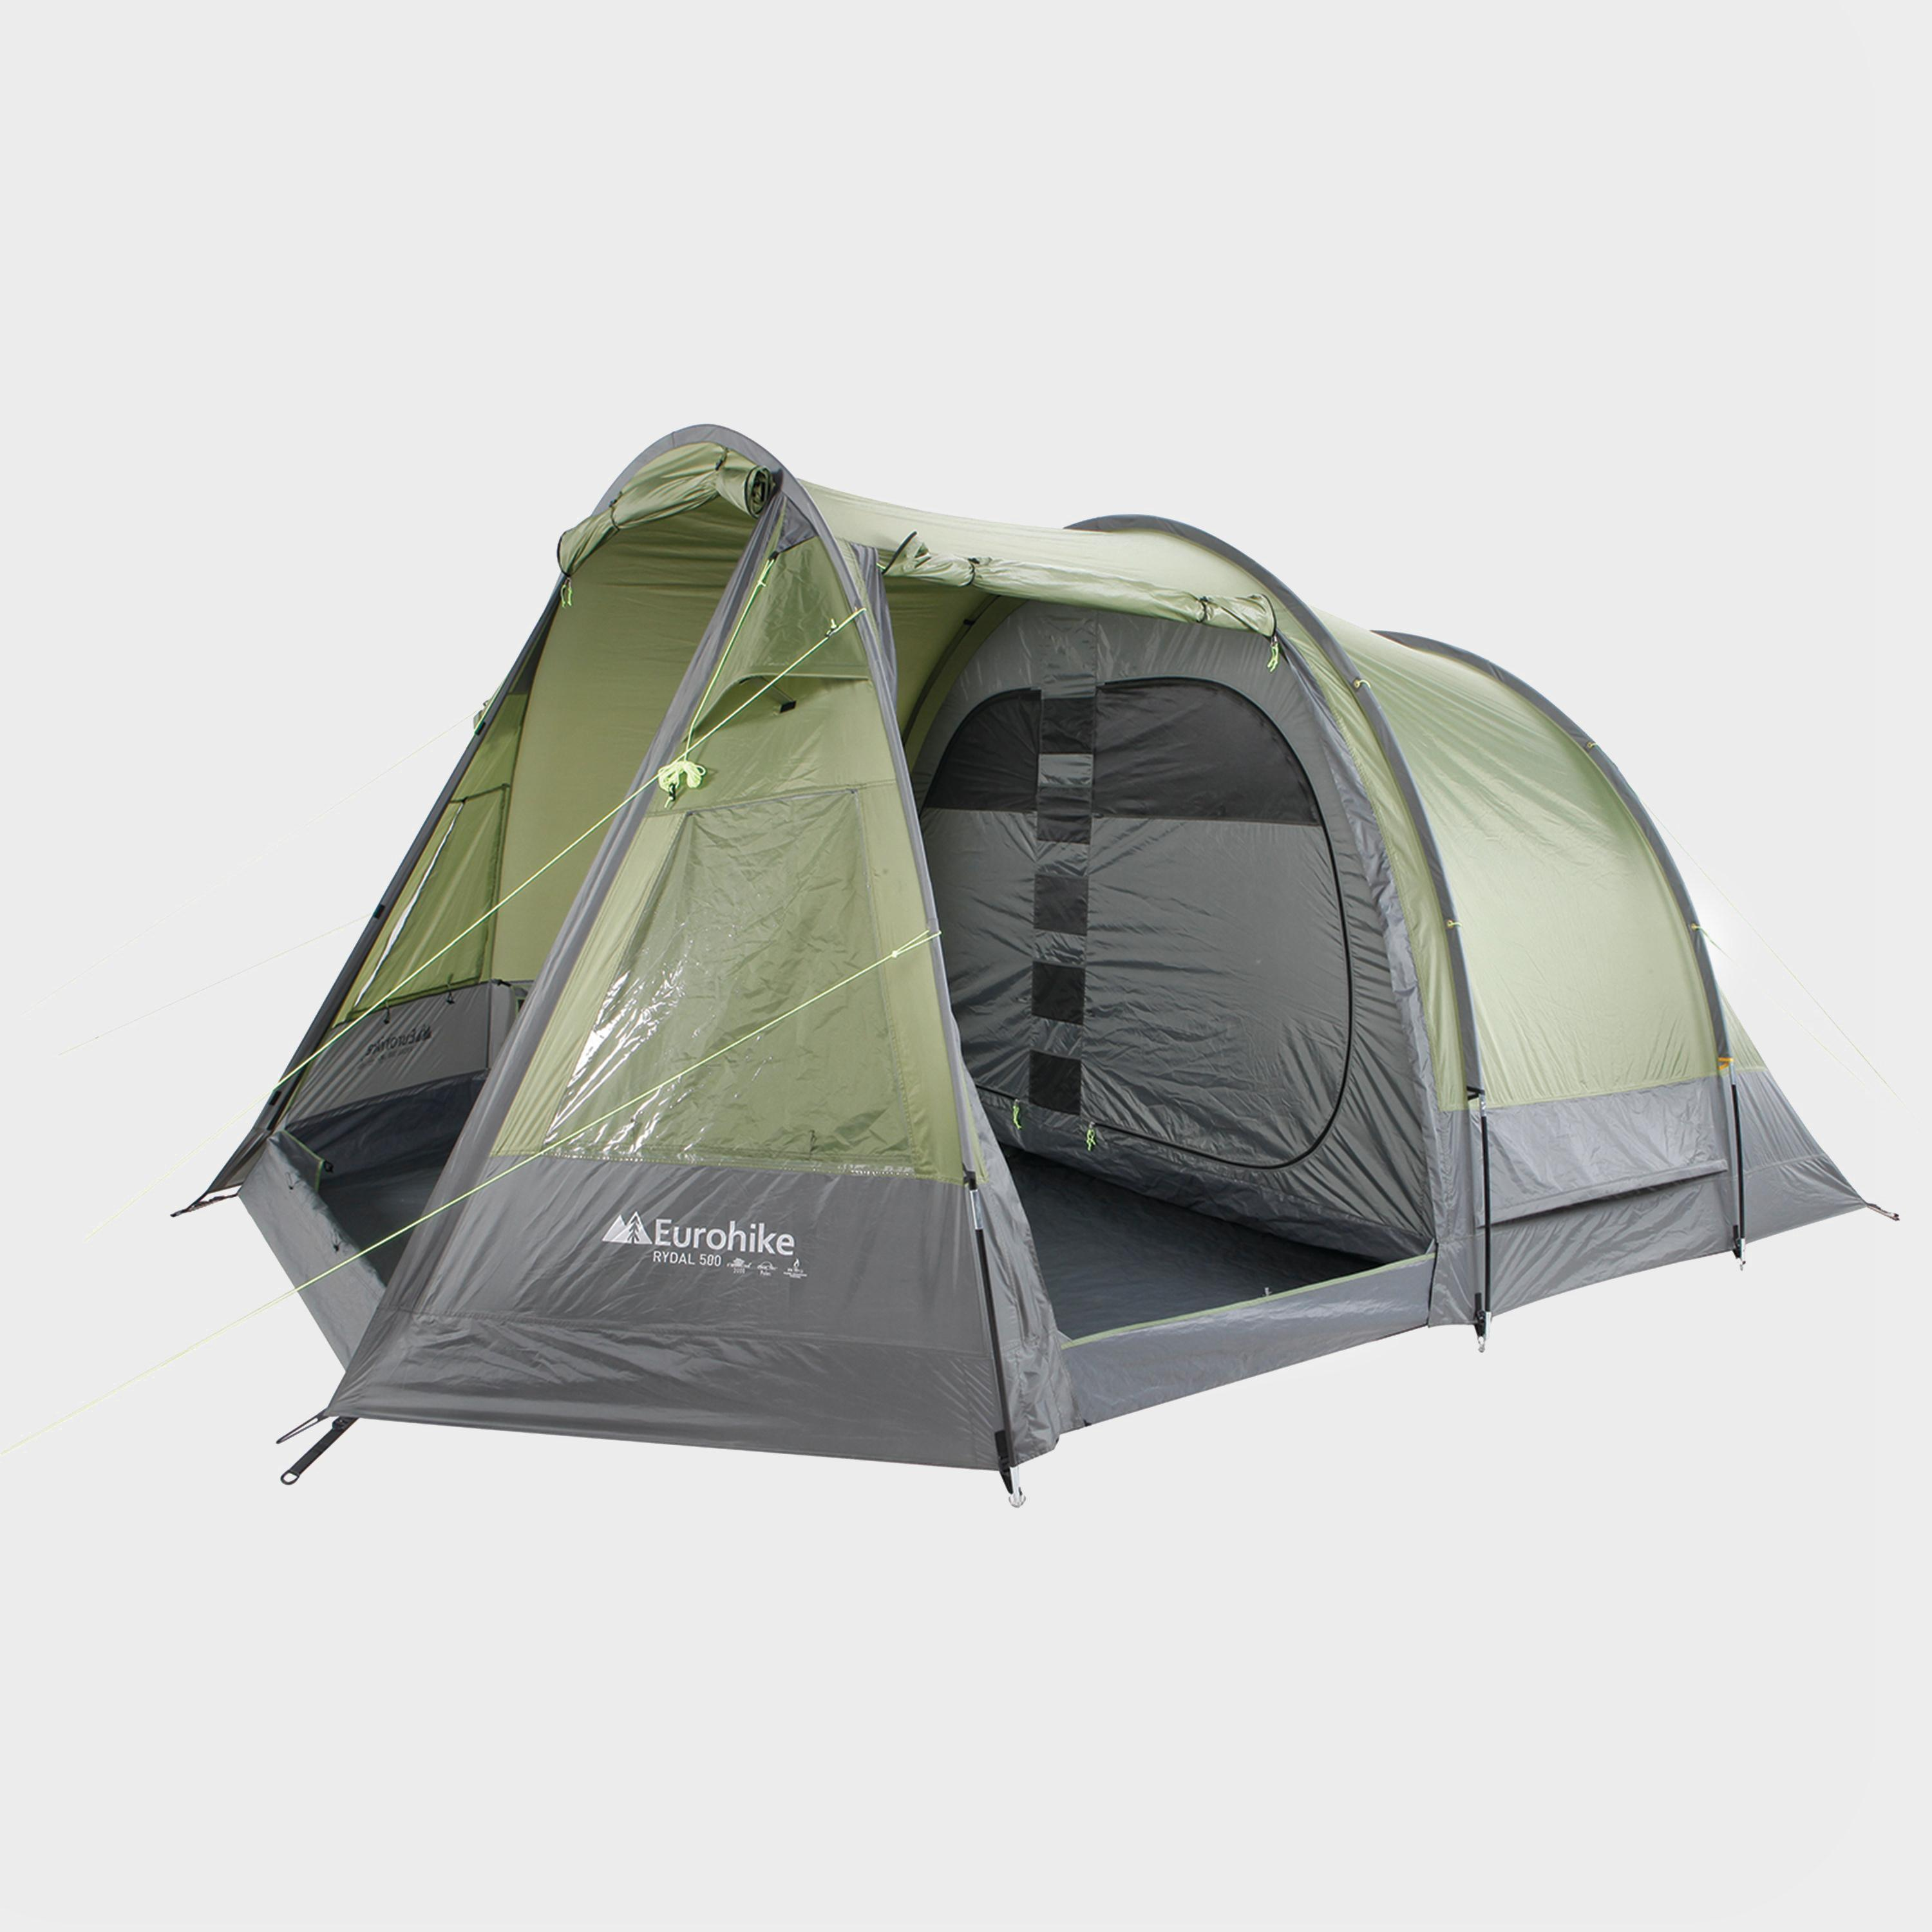 EUROHIKE Rydal 500 5 Person Tent & Cheap 4 Man u0026 5 Man Tents | Millets